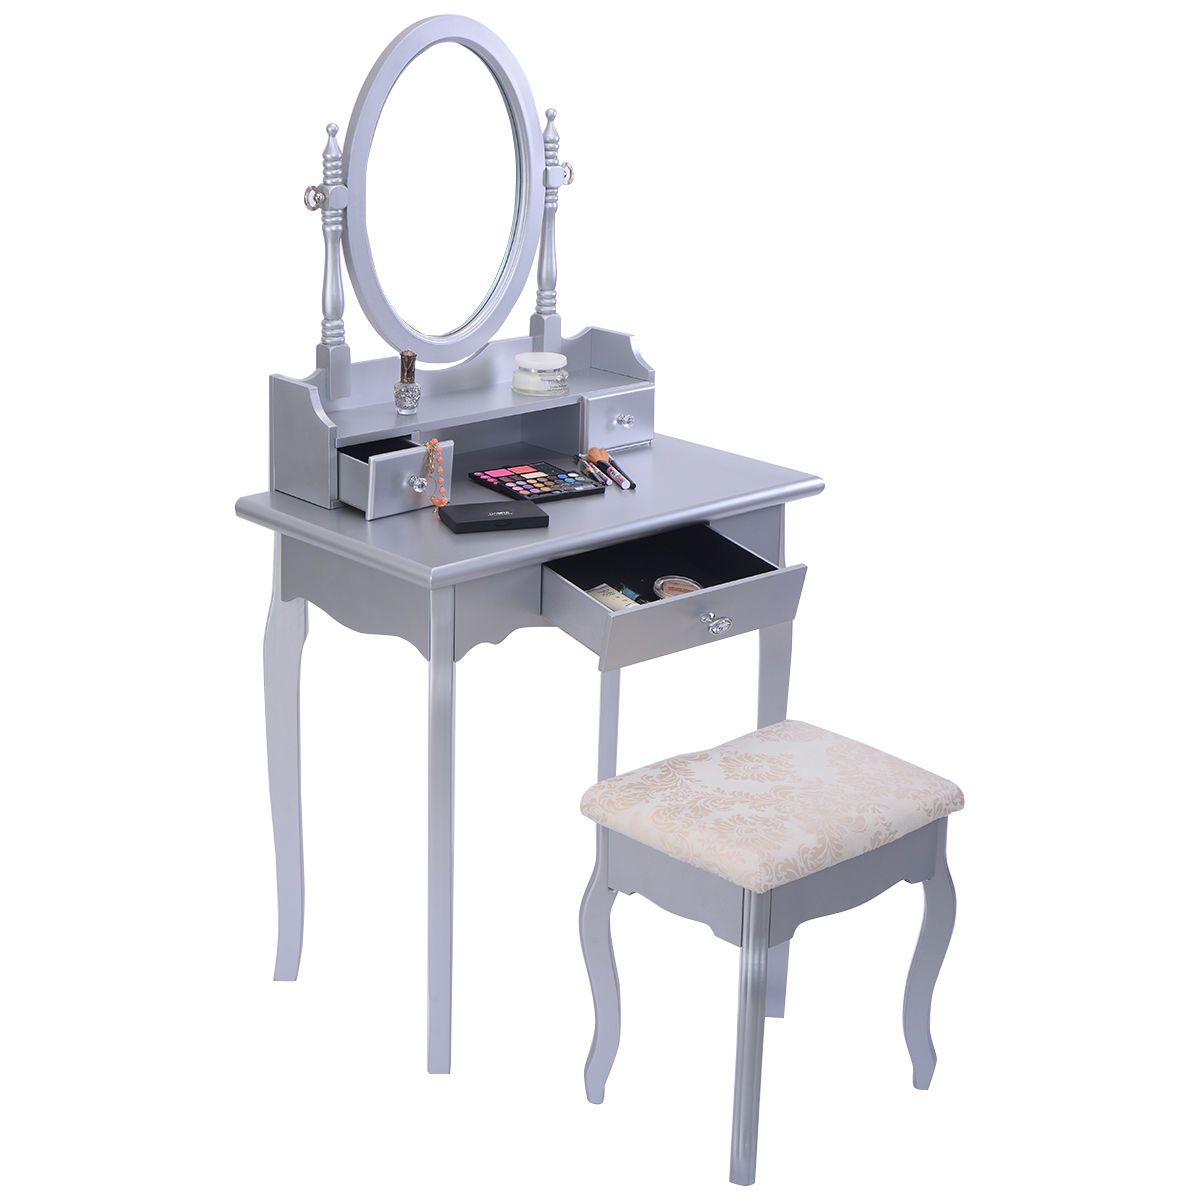 Vanity jewelry makeup dressing table set wstool drawer mirror wood